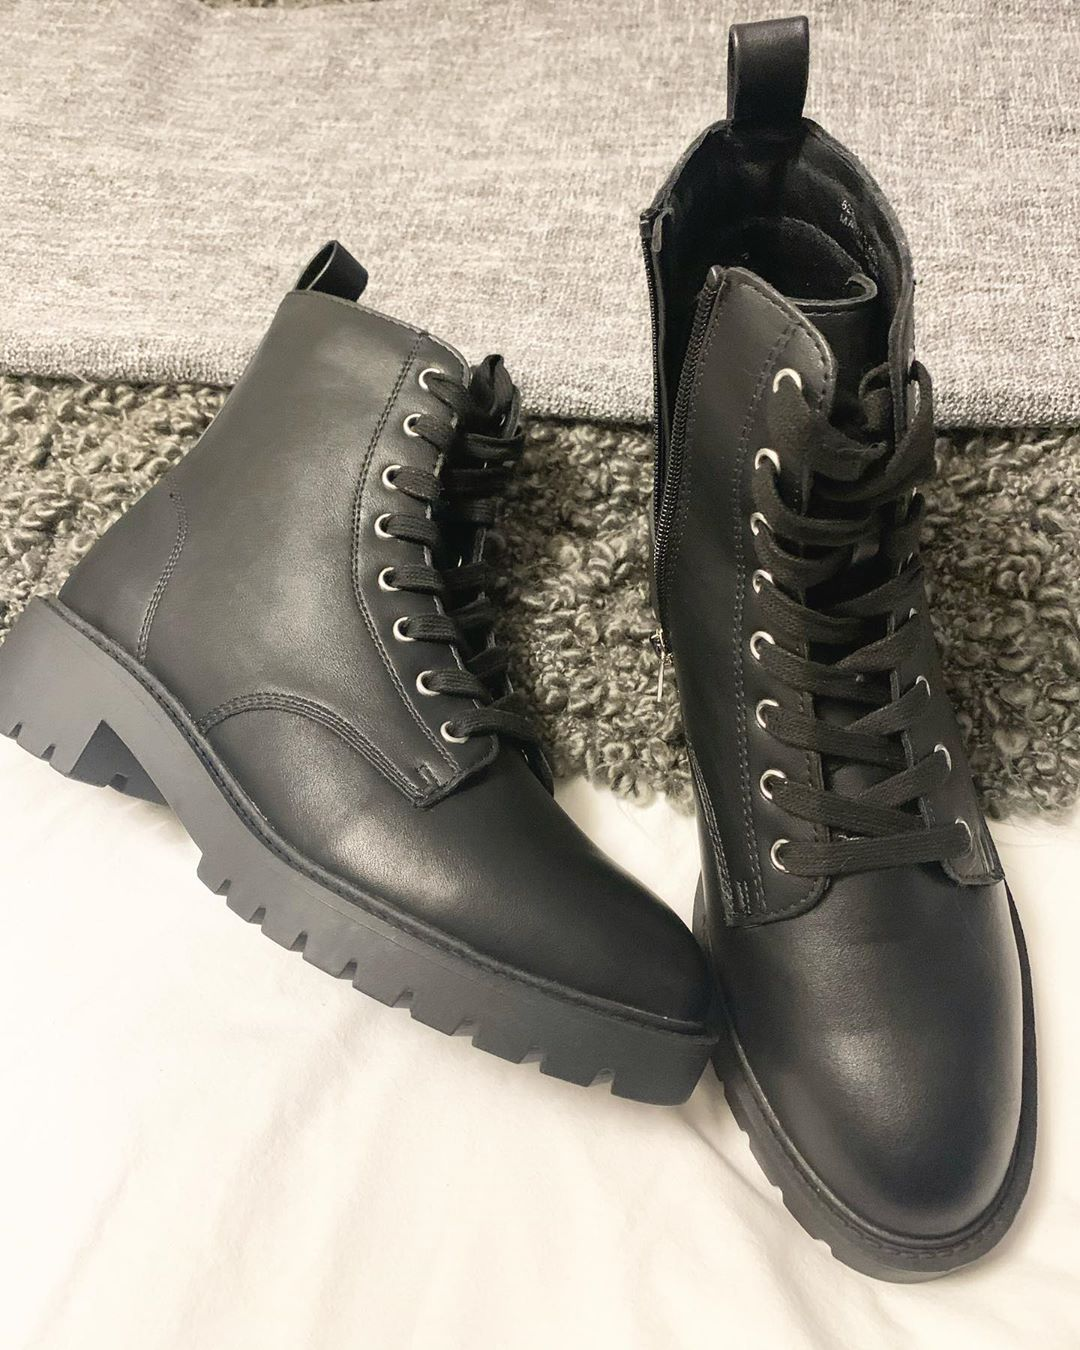 Winter Vegan Boots From Newlook They Even Have A Vegan Sticker On The Sole Veganboots Veganfashion Vega Vegan Shoes Boots Vegan Boots